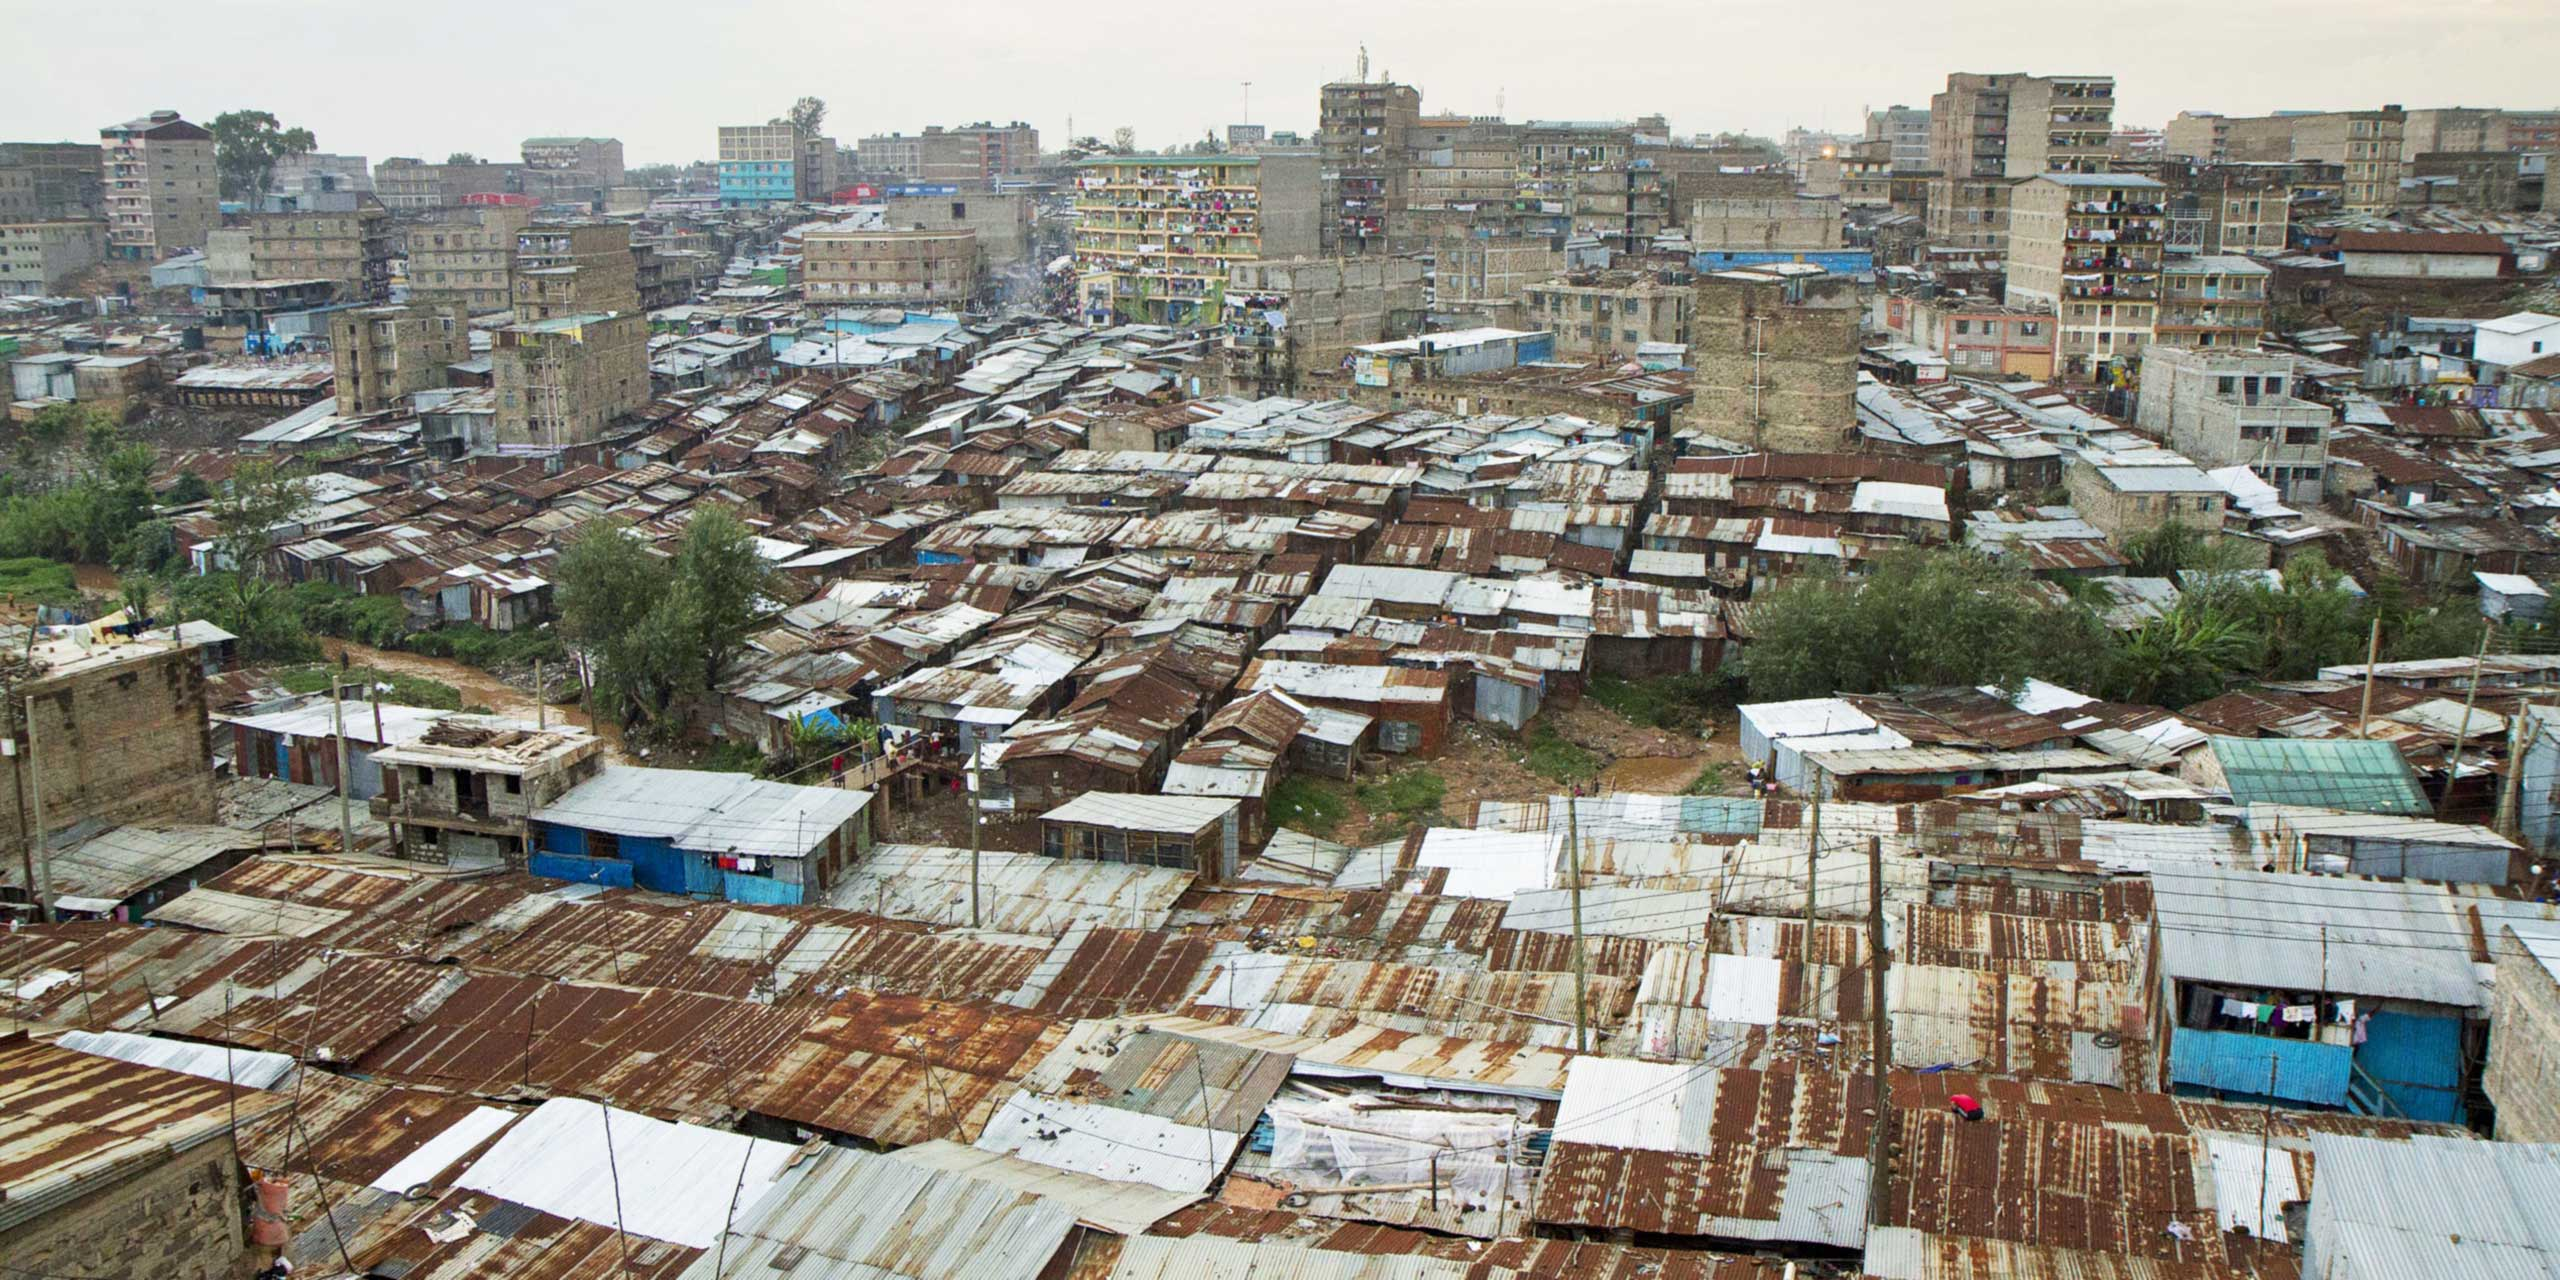 http://staging.skoll.org/wp-content/uploads/2015/01/slum-dwellers-international-sl1.jpg